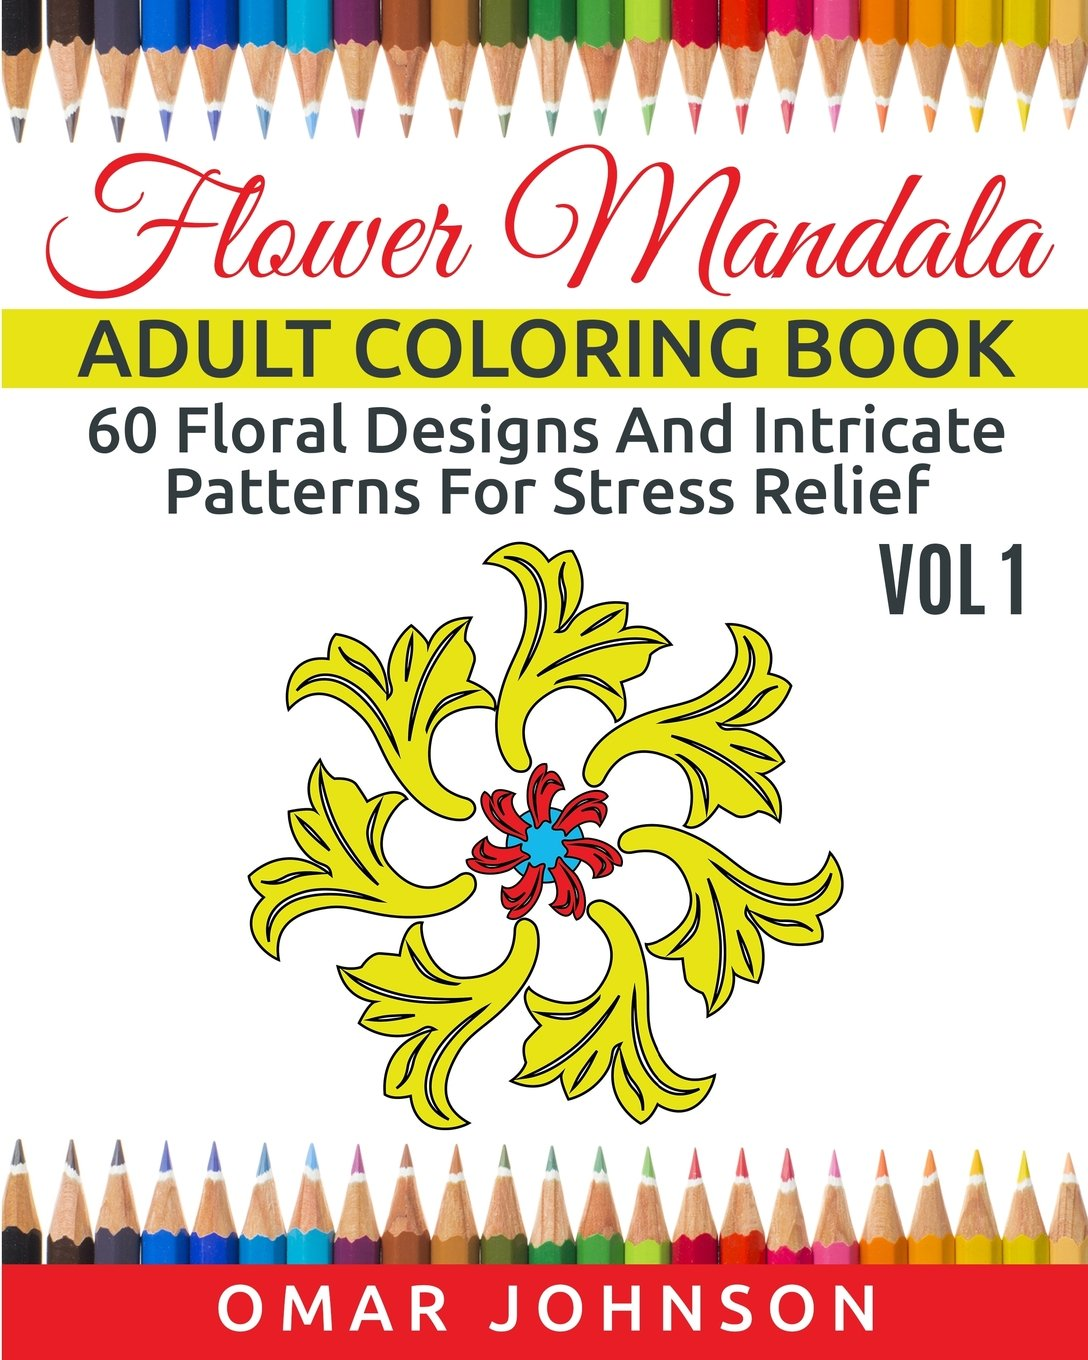 Read Online Flower Mandala Adult Coloring Book Vol 1: 60 Floral Designs And Intricate Patterns For Stress Relief PDF